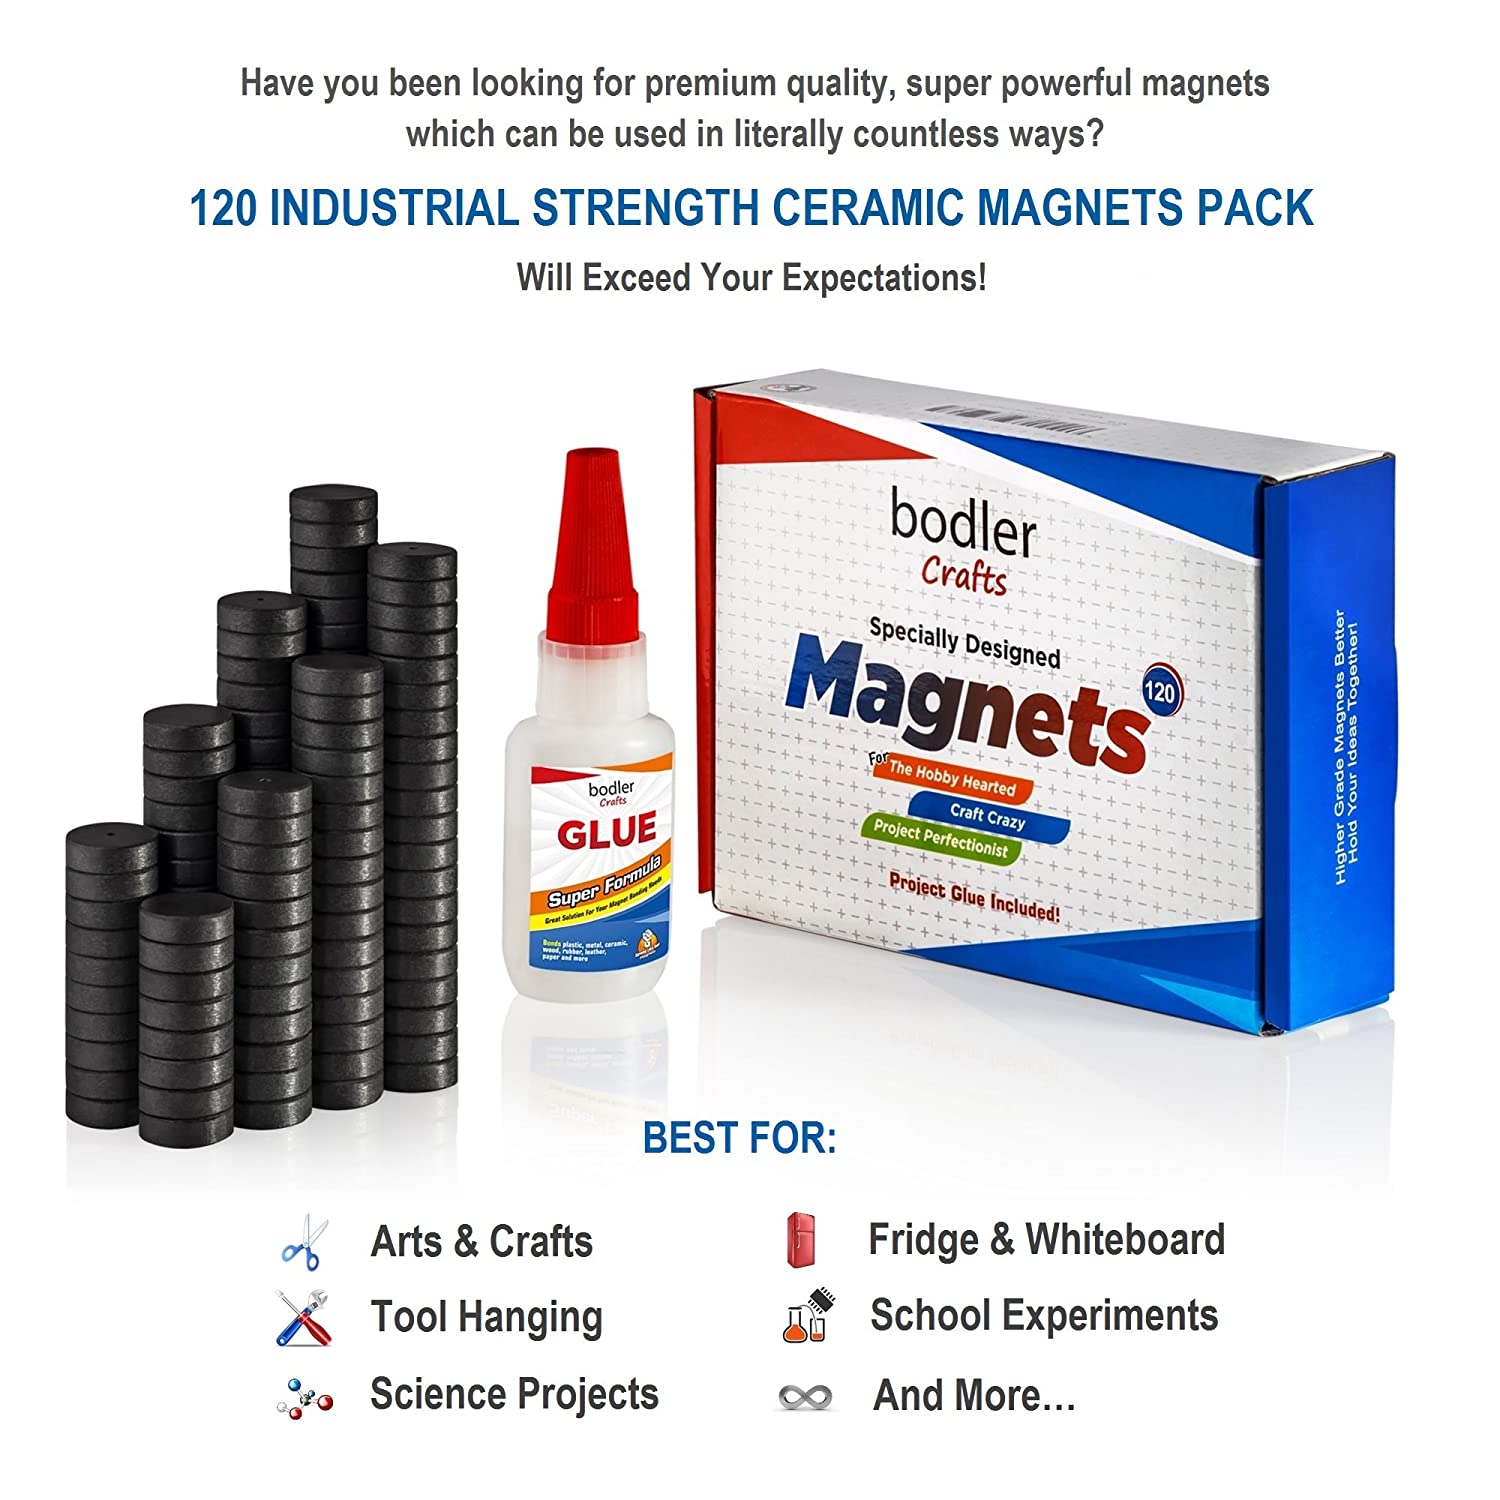 Buy magnets for crafts - Amazon Com 120 Strong Ceramic Industrial Magnets For Arts Crafts By Bodler Grade 8 18mm Small Round Disc Ferrite School Magnets Bulk For Science